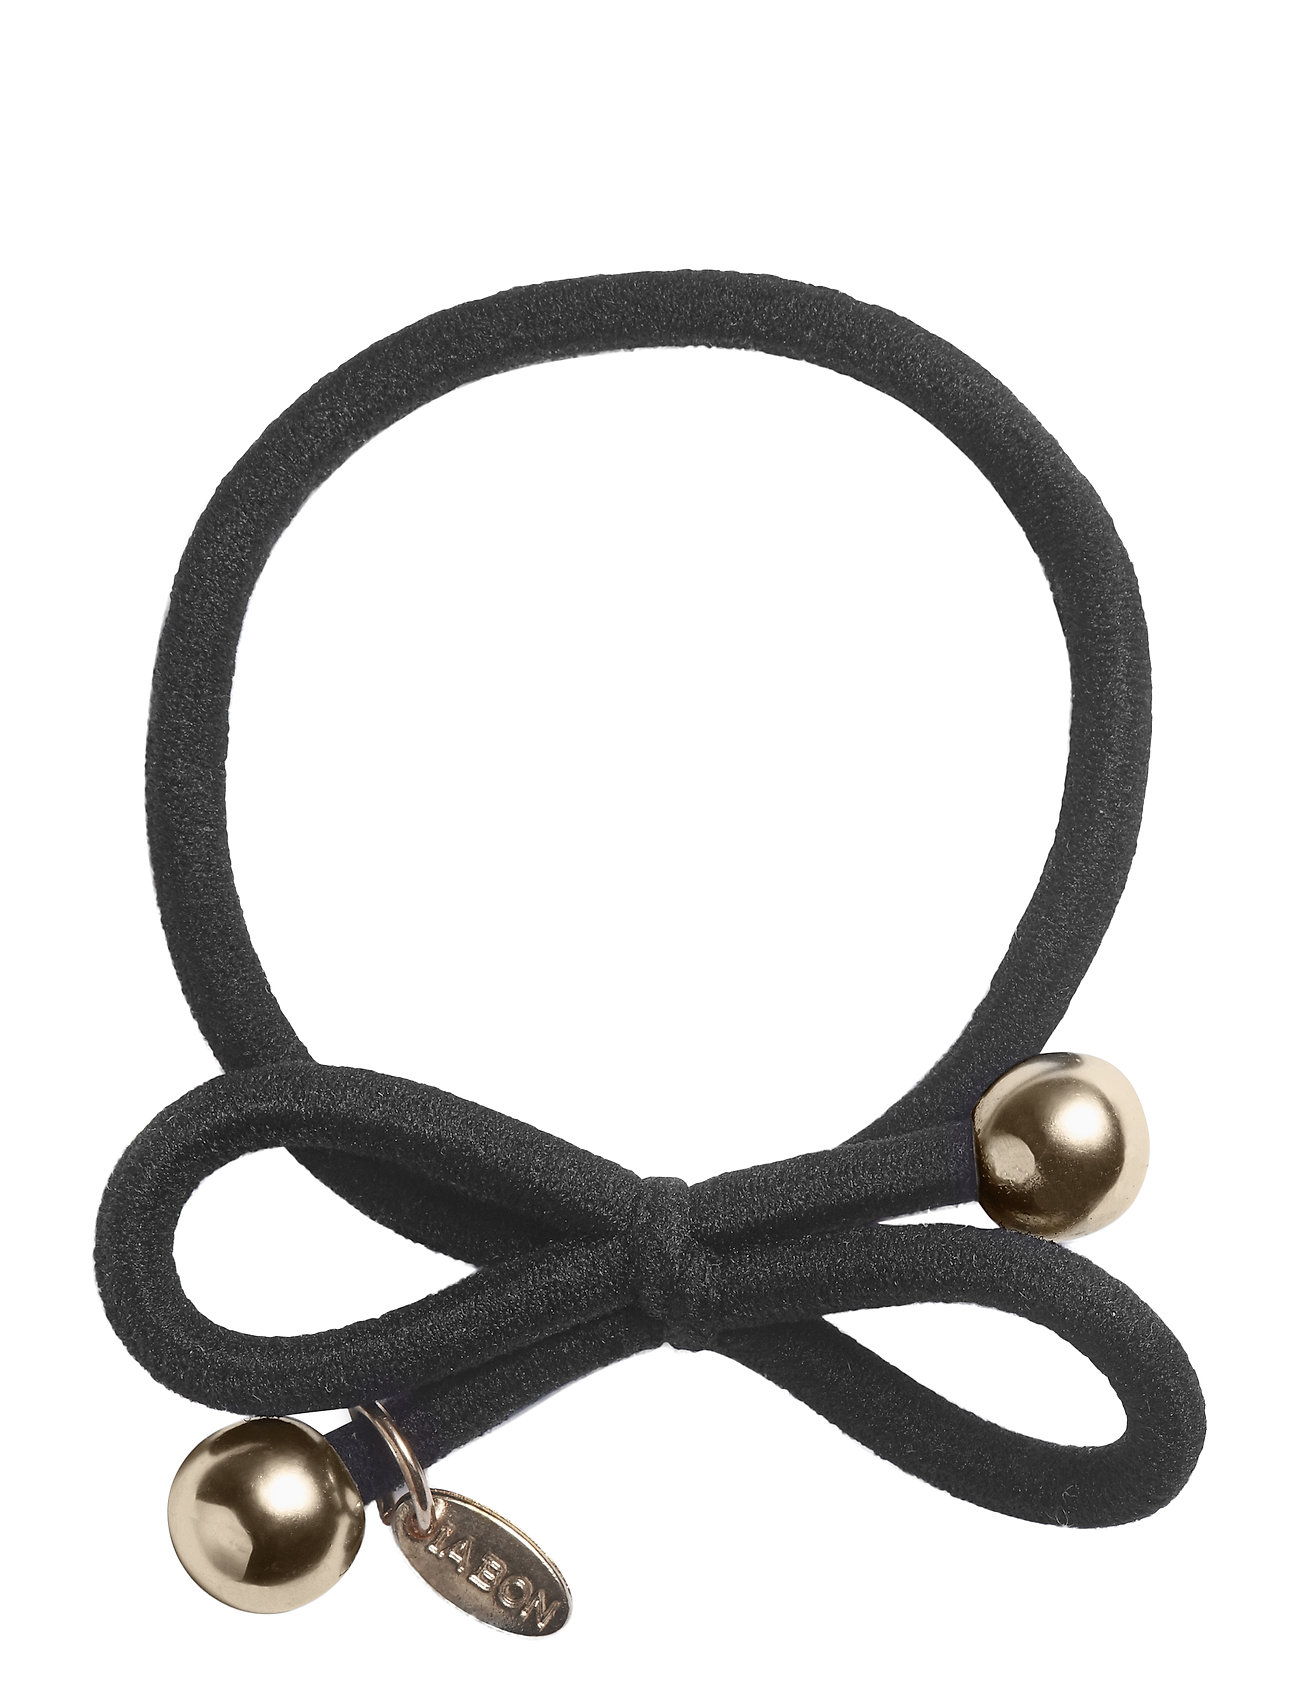 Image of Hair Tie With Gold Bead - Black Beauty WOMEN Hair Hair Accessories Sort Ia Bon (3466349005)